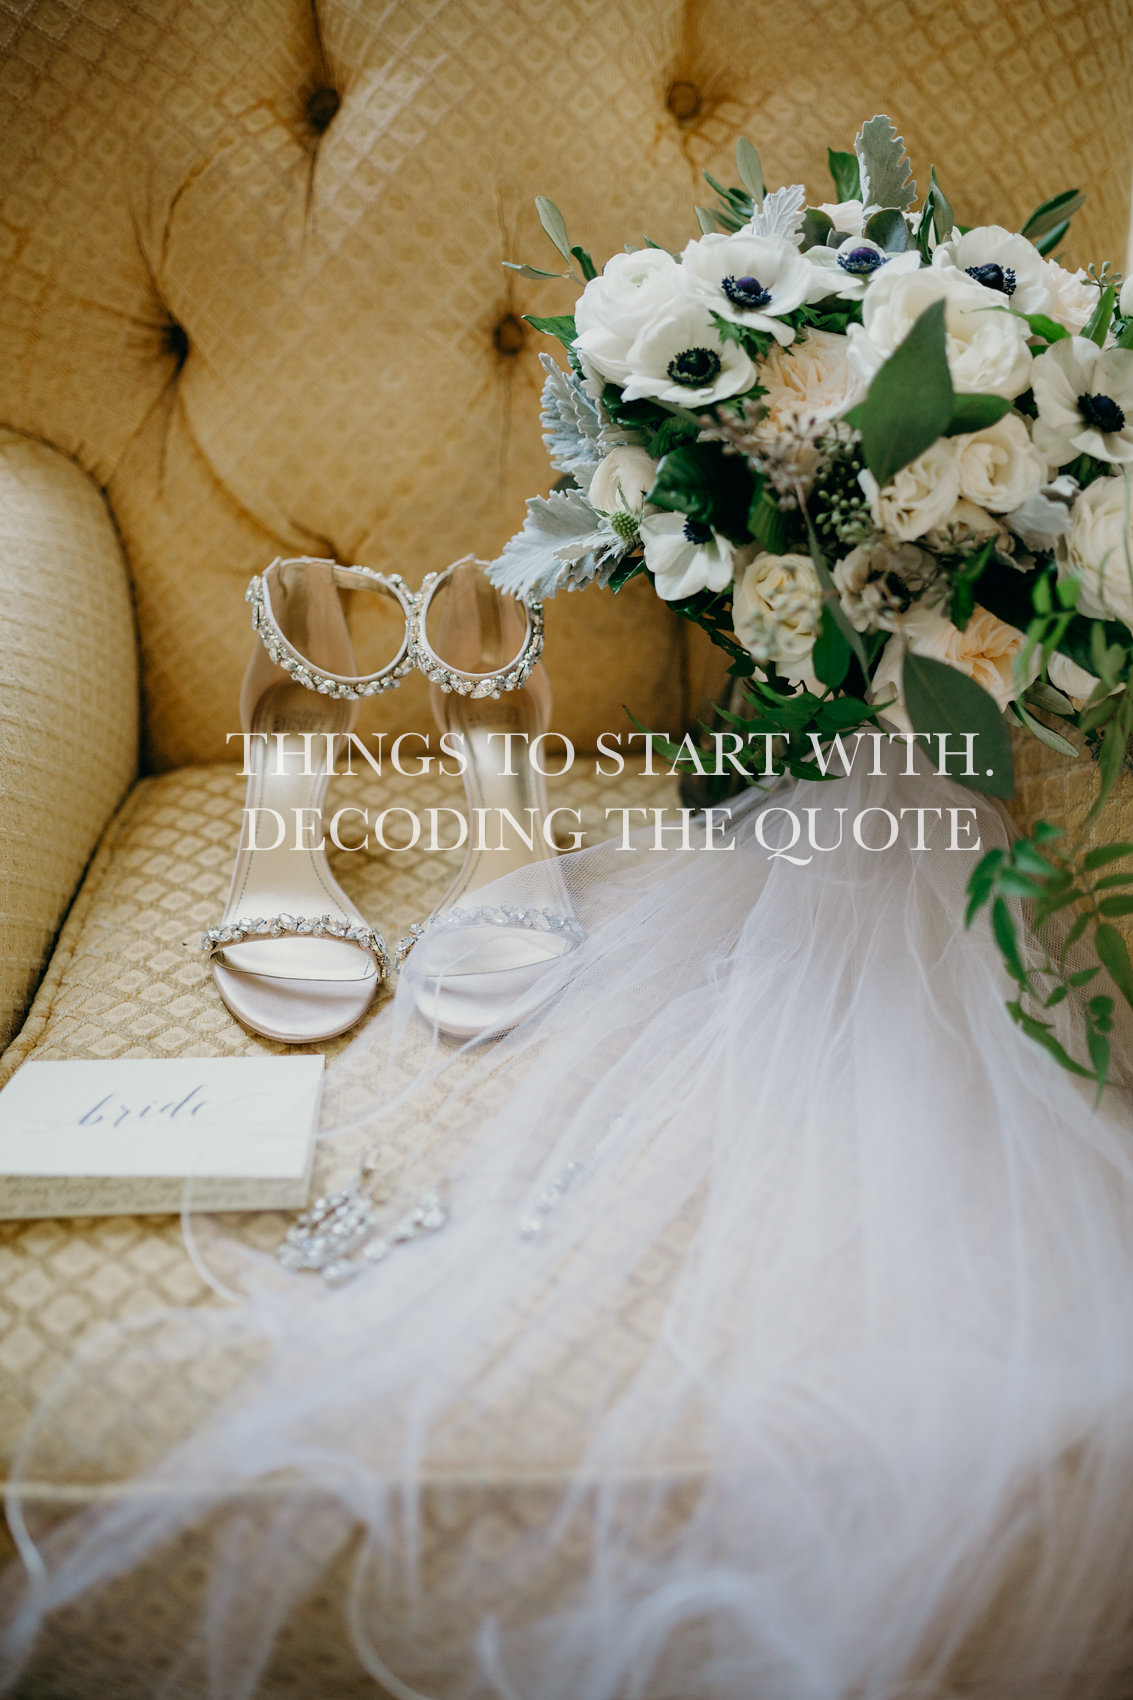 things to start with. decoding the quote from wedding